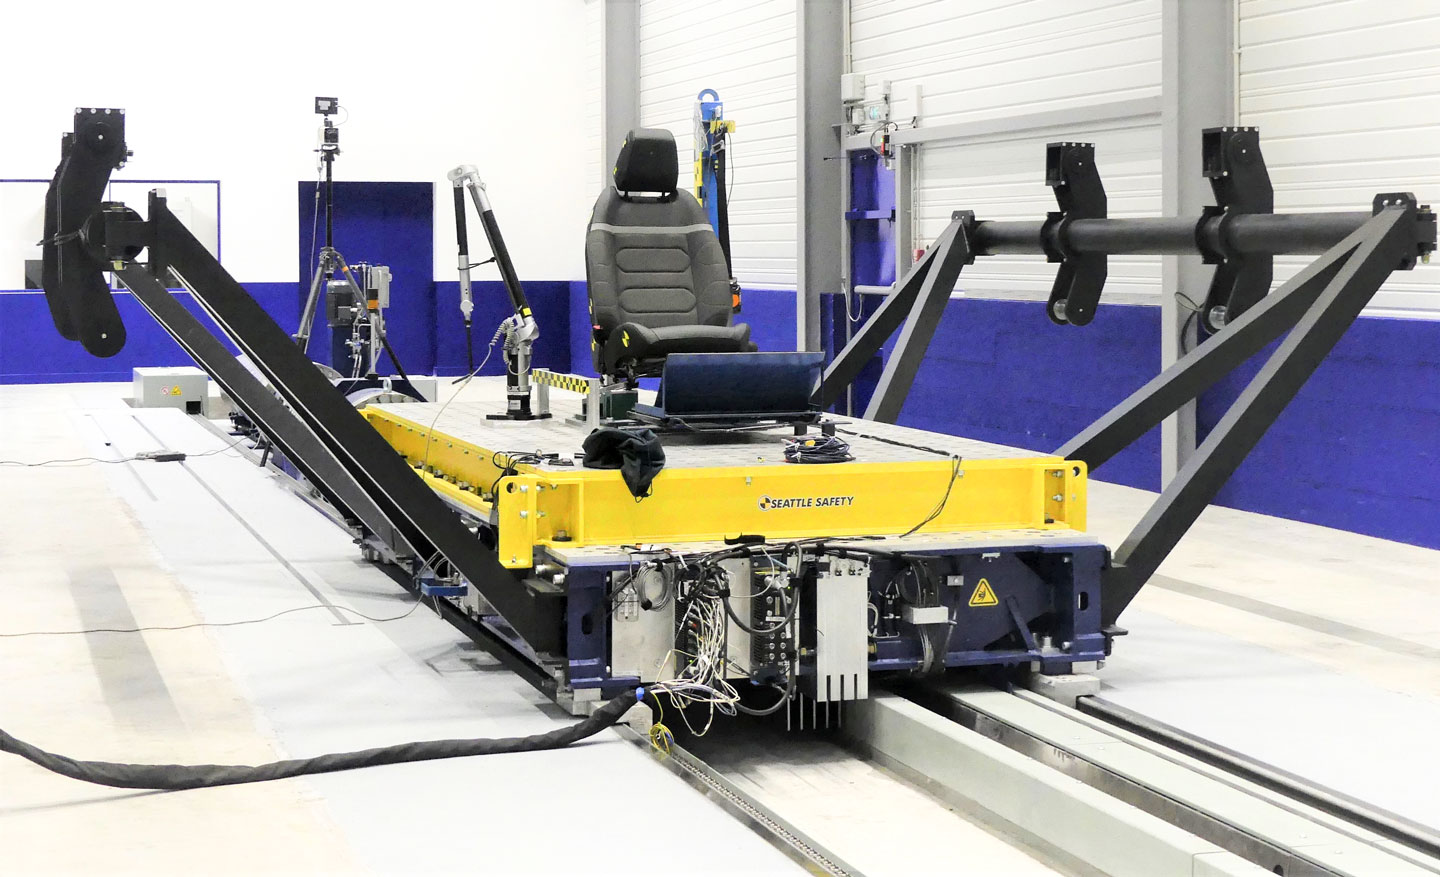 Sled test facility in France, used for Euro NCAP protocols